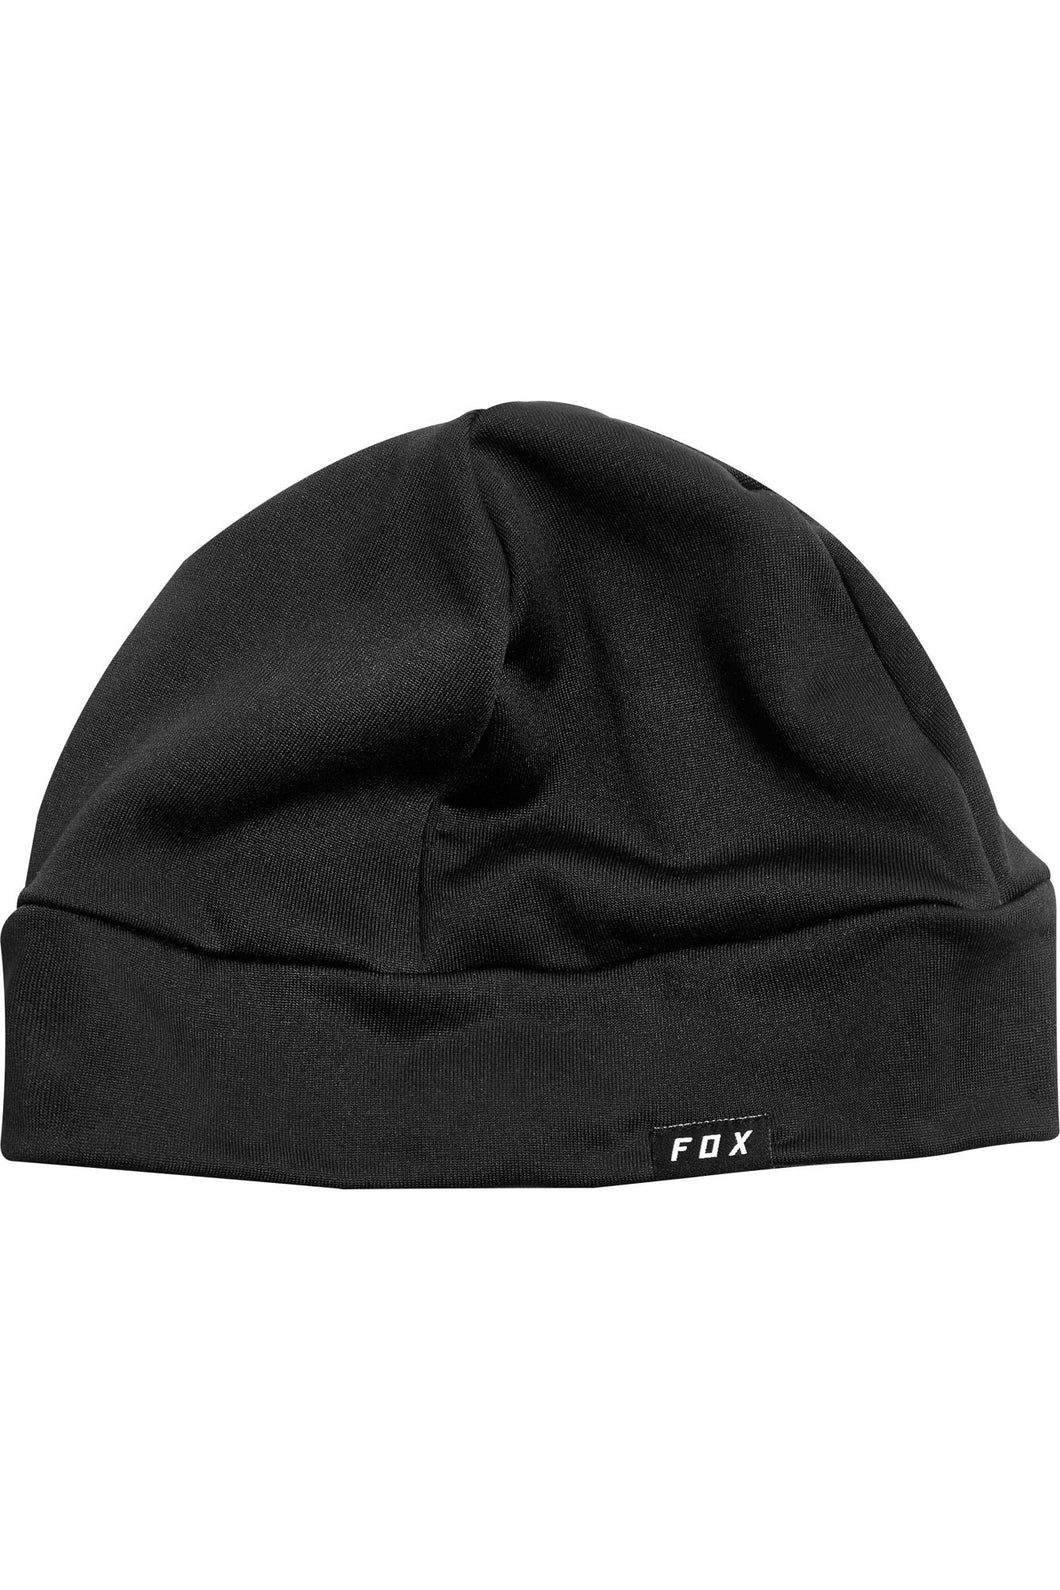 Fox Racing MTB Polartec Skull Cap mountain bike ride beanie black